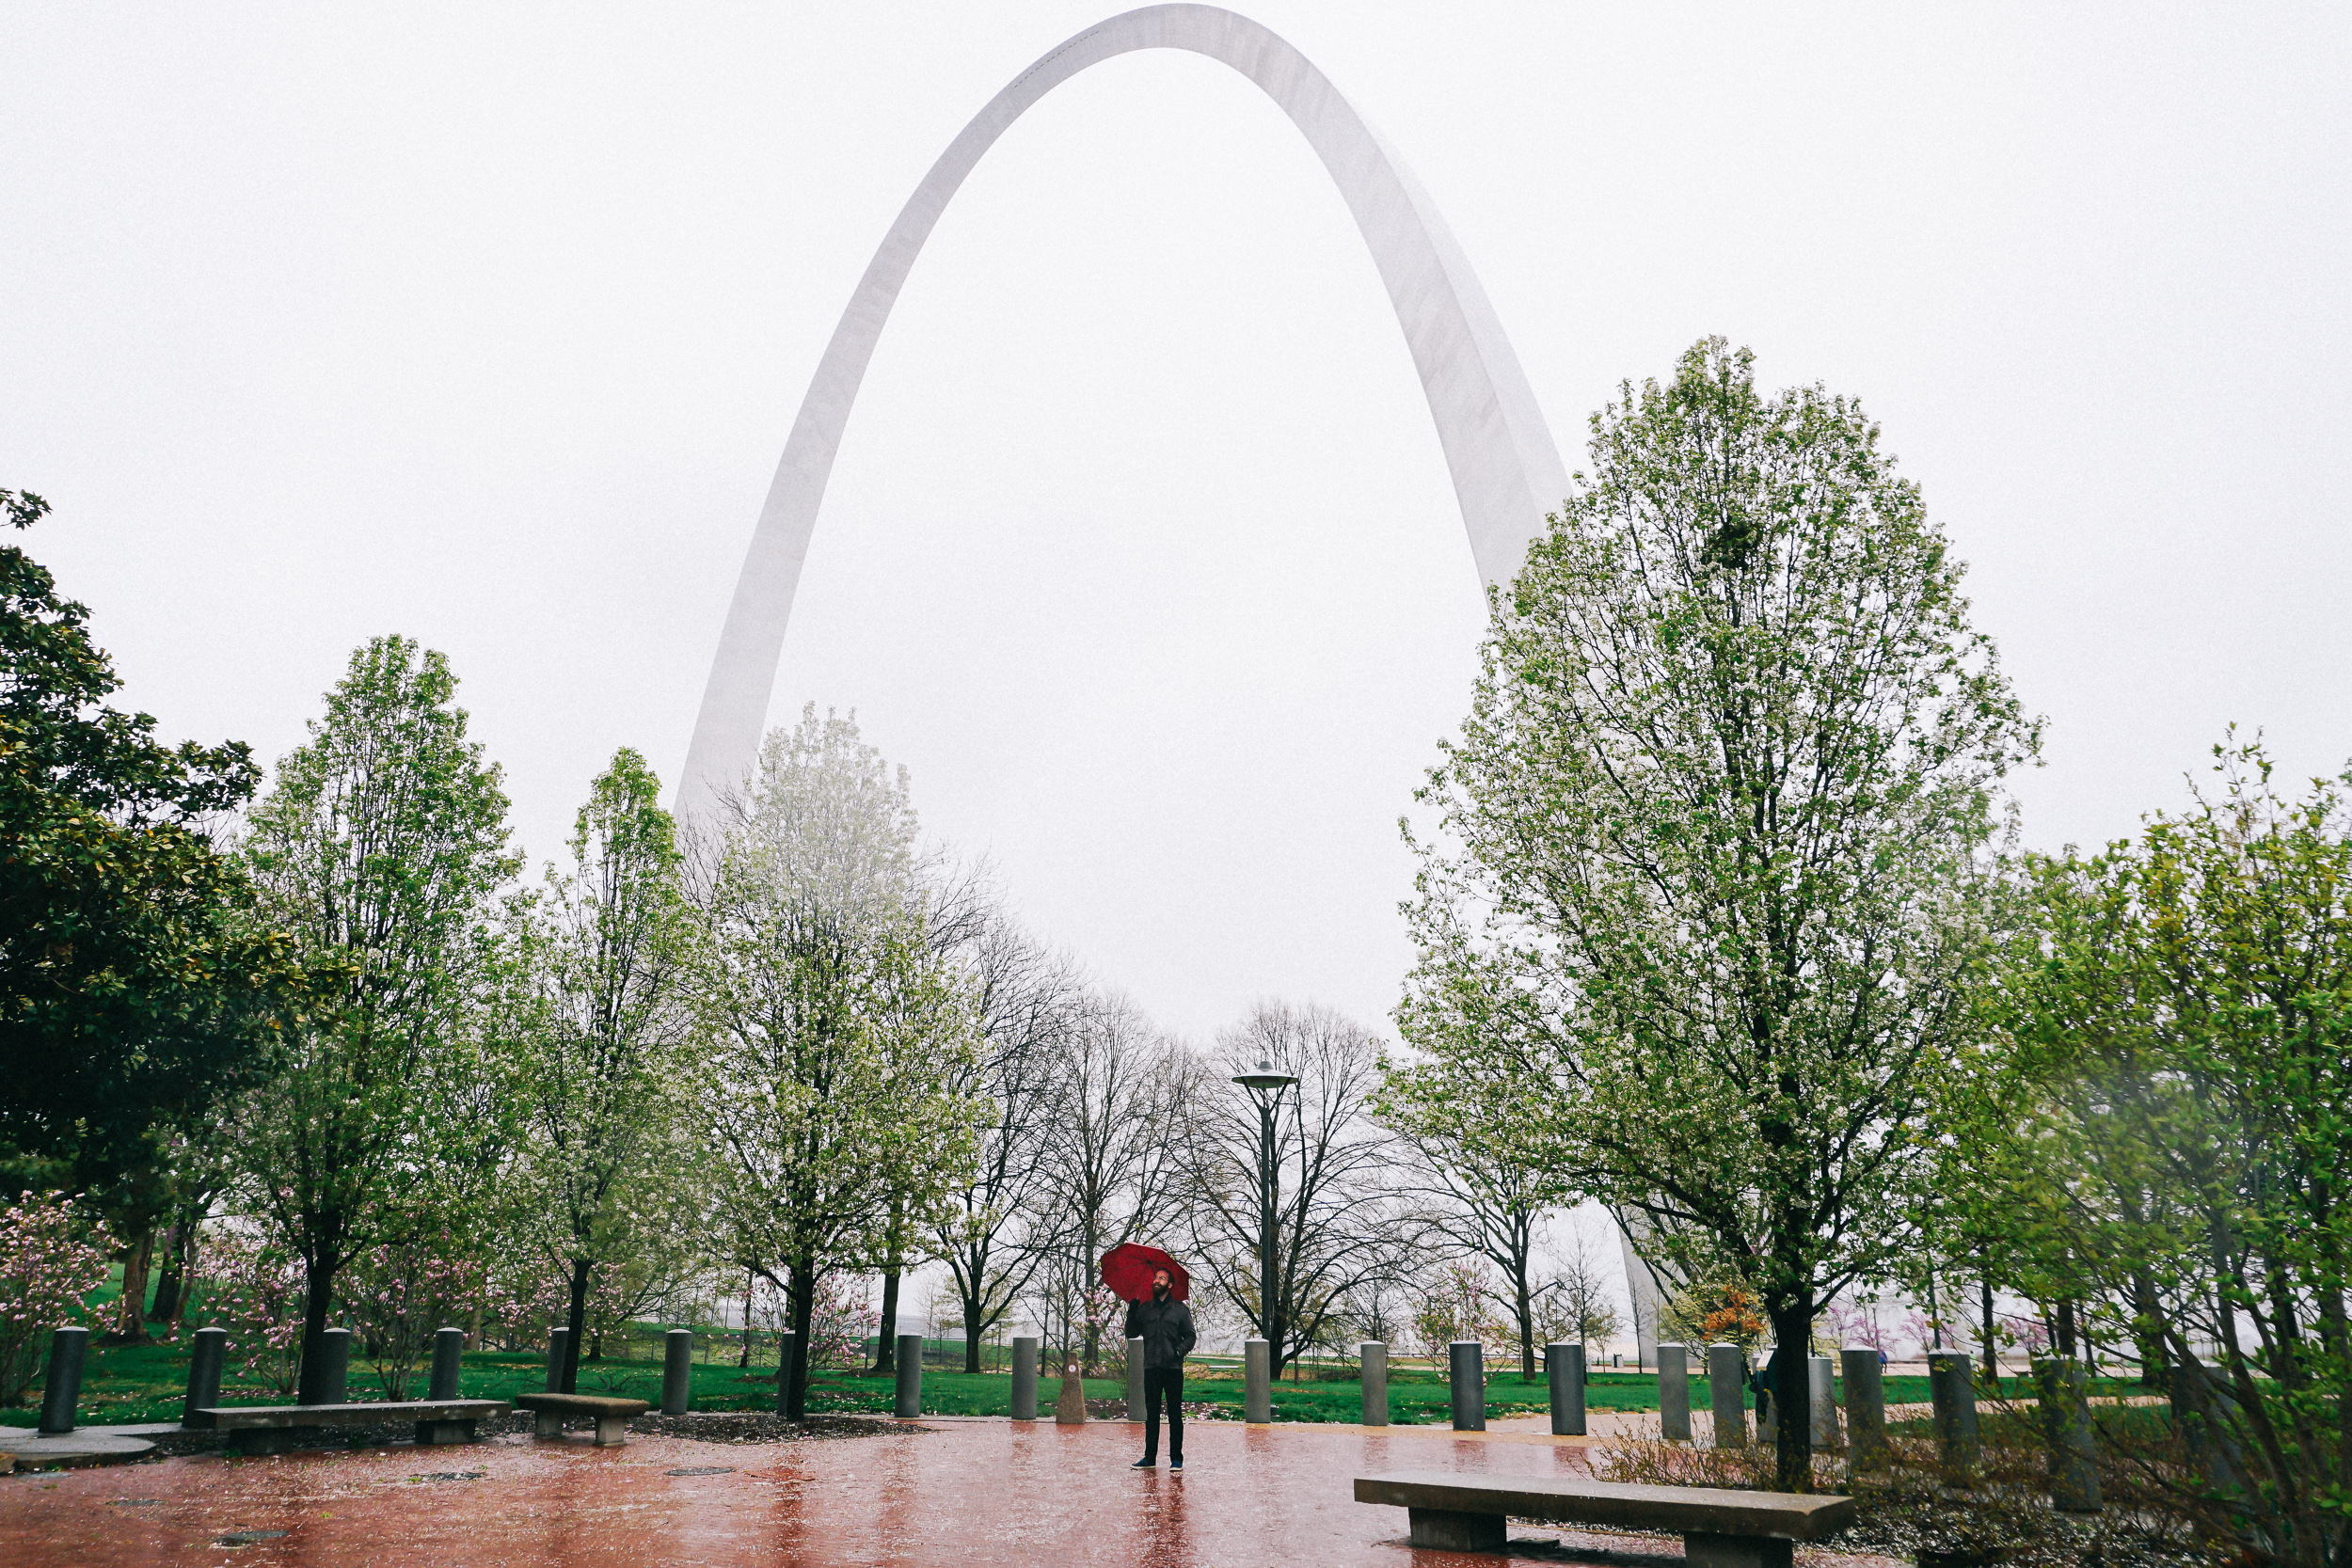 st louis_laura_suprenant_photography_travel-10.jpg